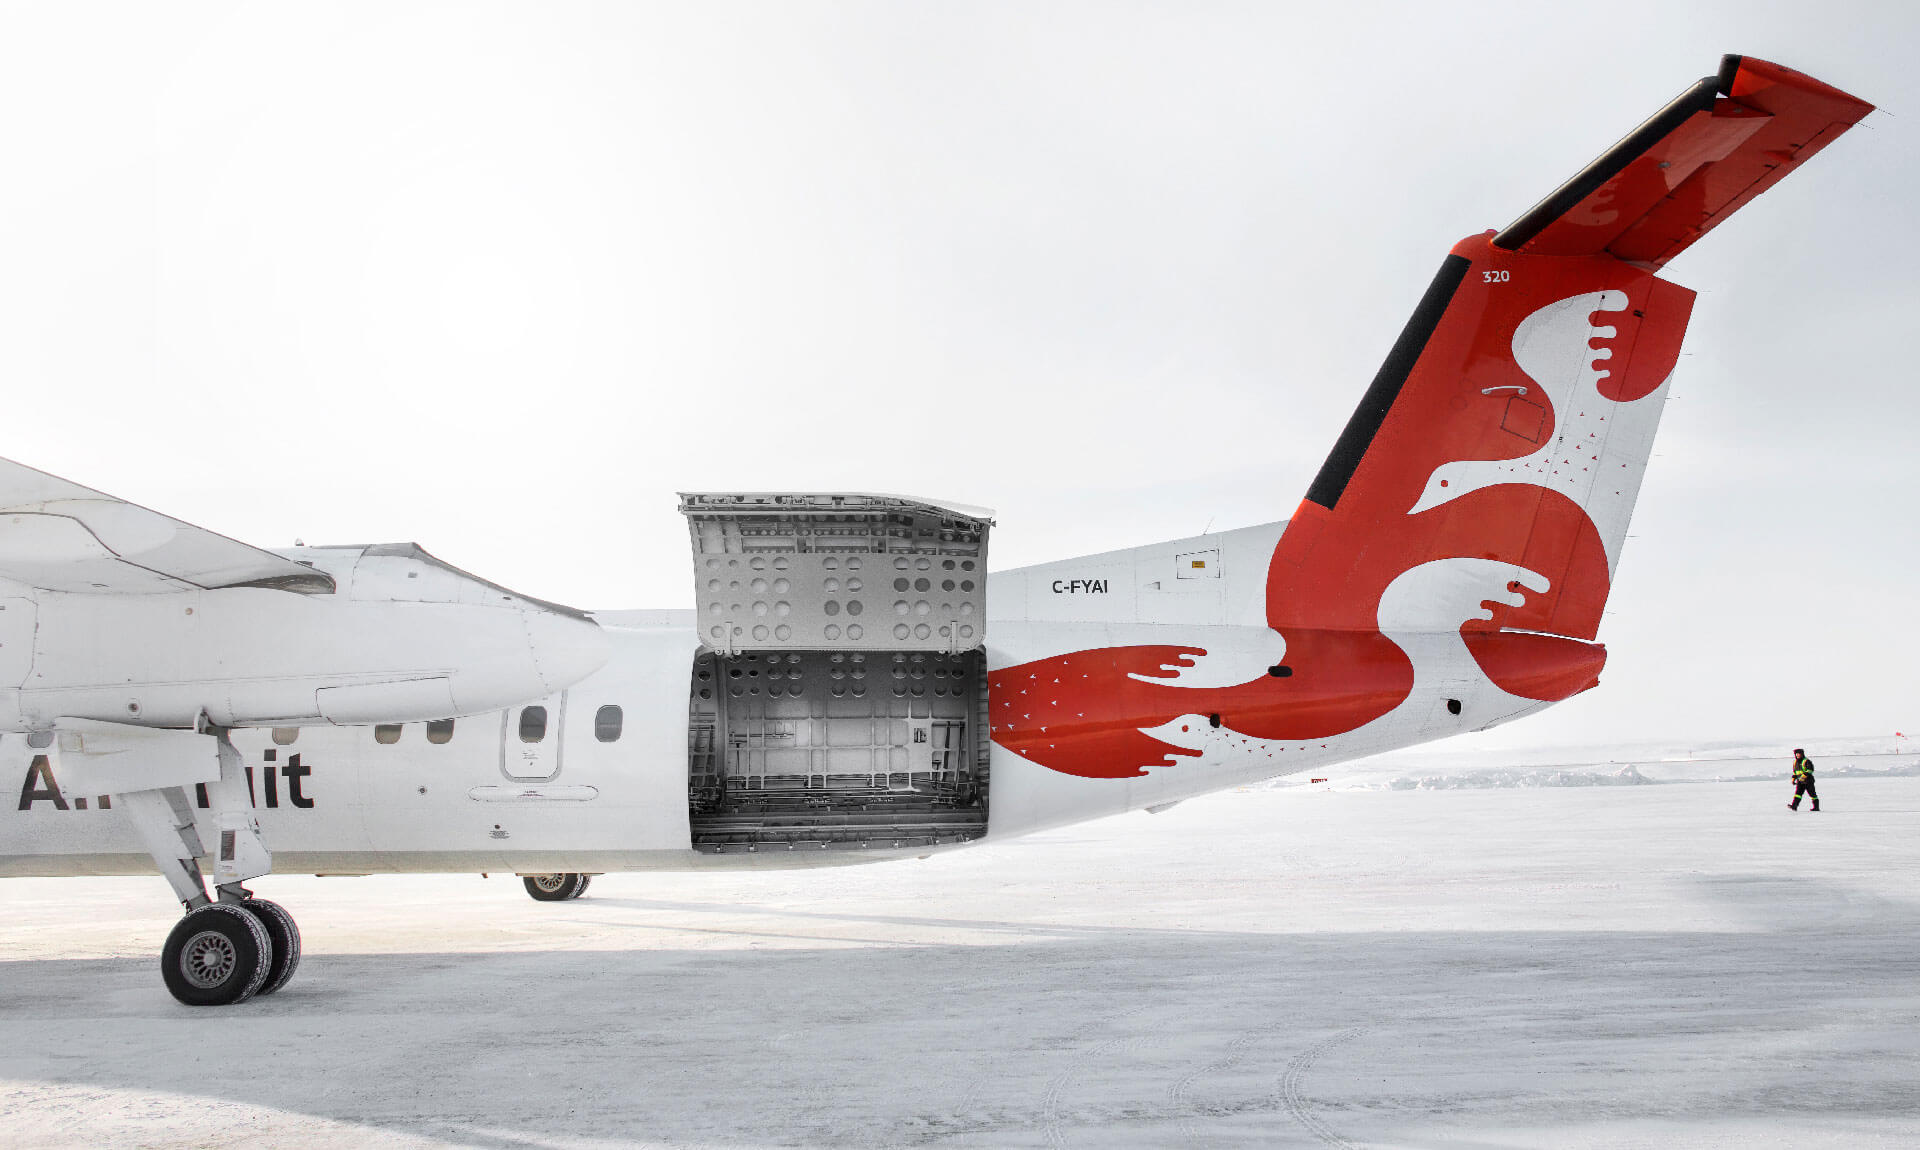 Dash 8 freighter with cargo door open